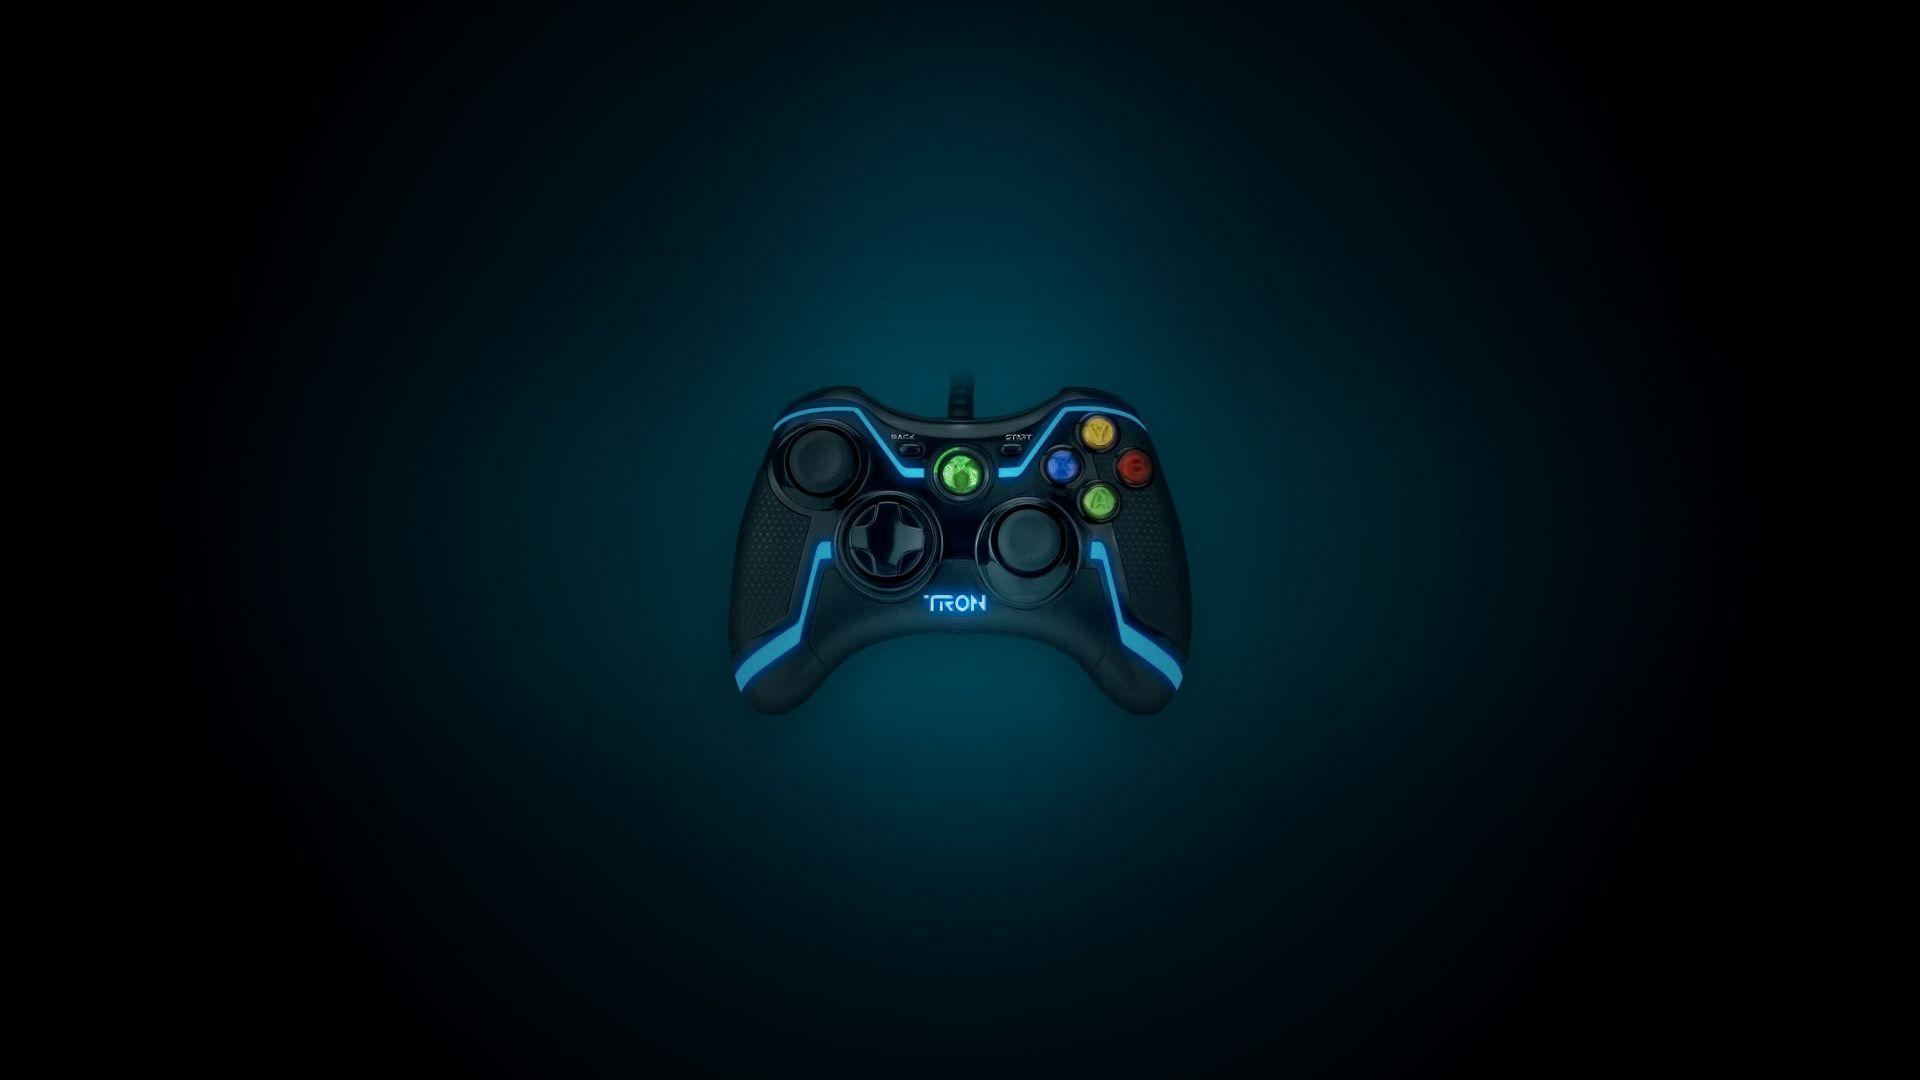 Gamer Thug Controller Hd Wallpapers: Cool Xbox Backgrounds